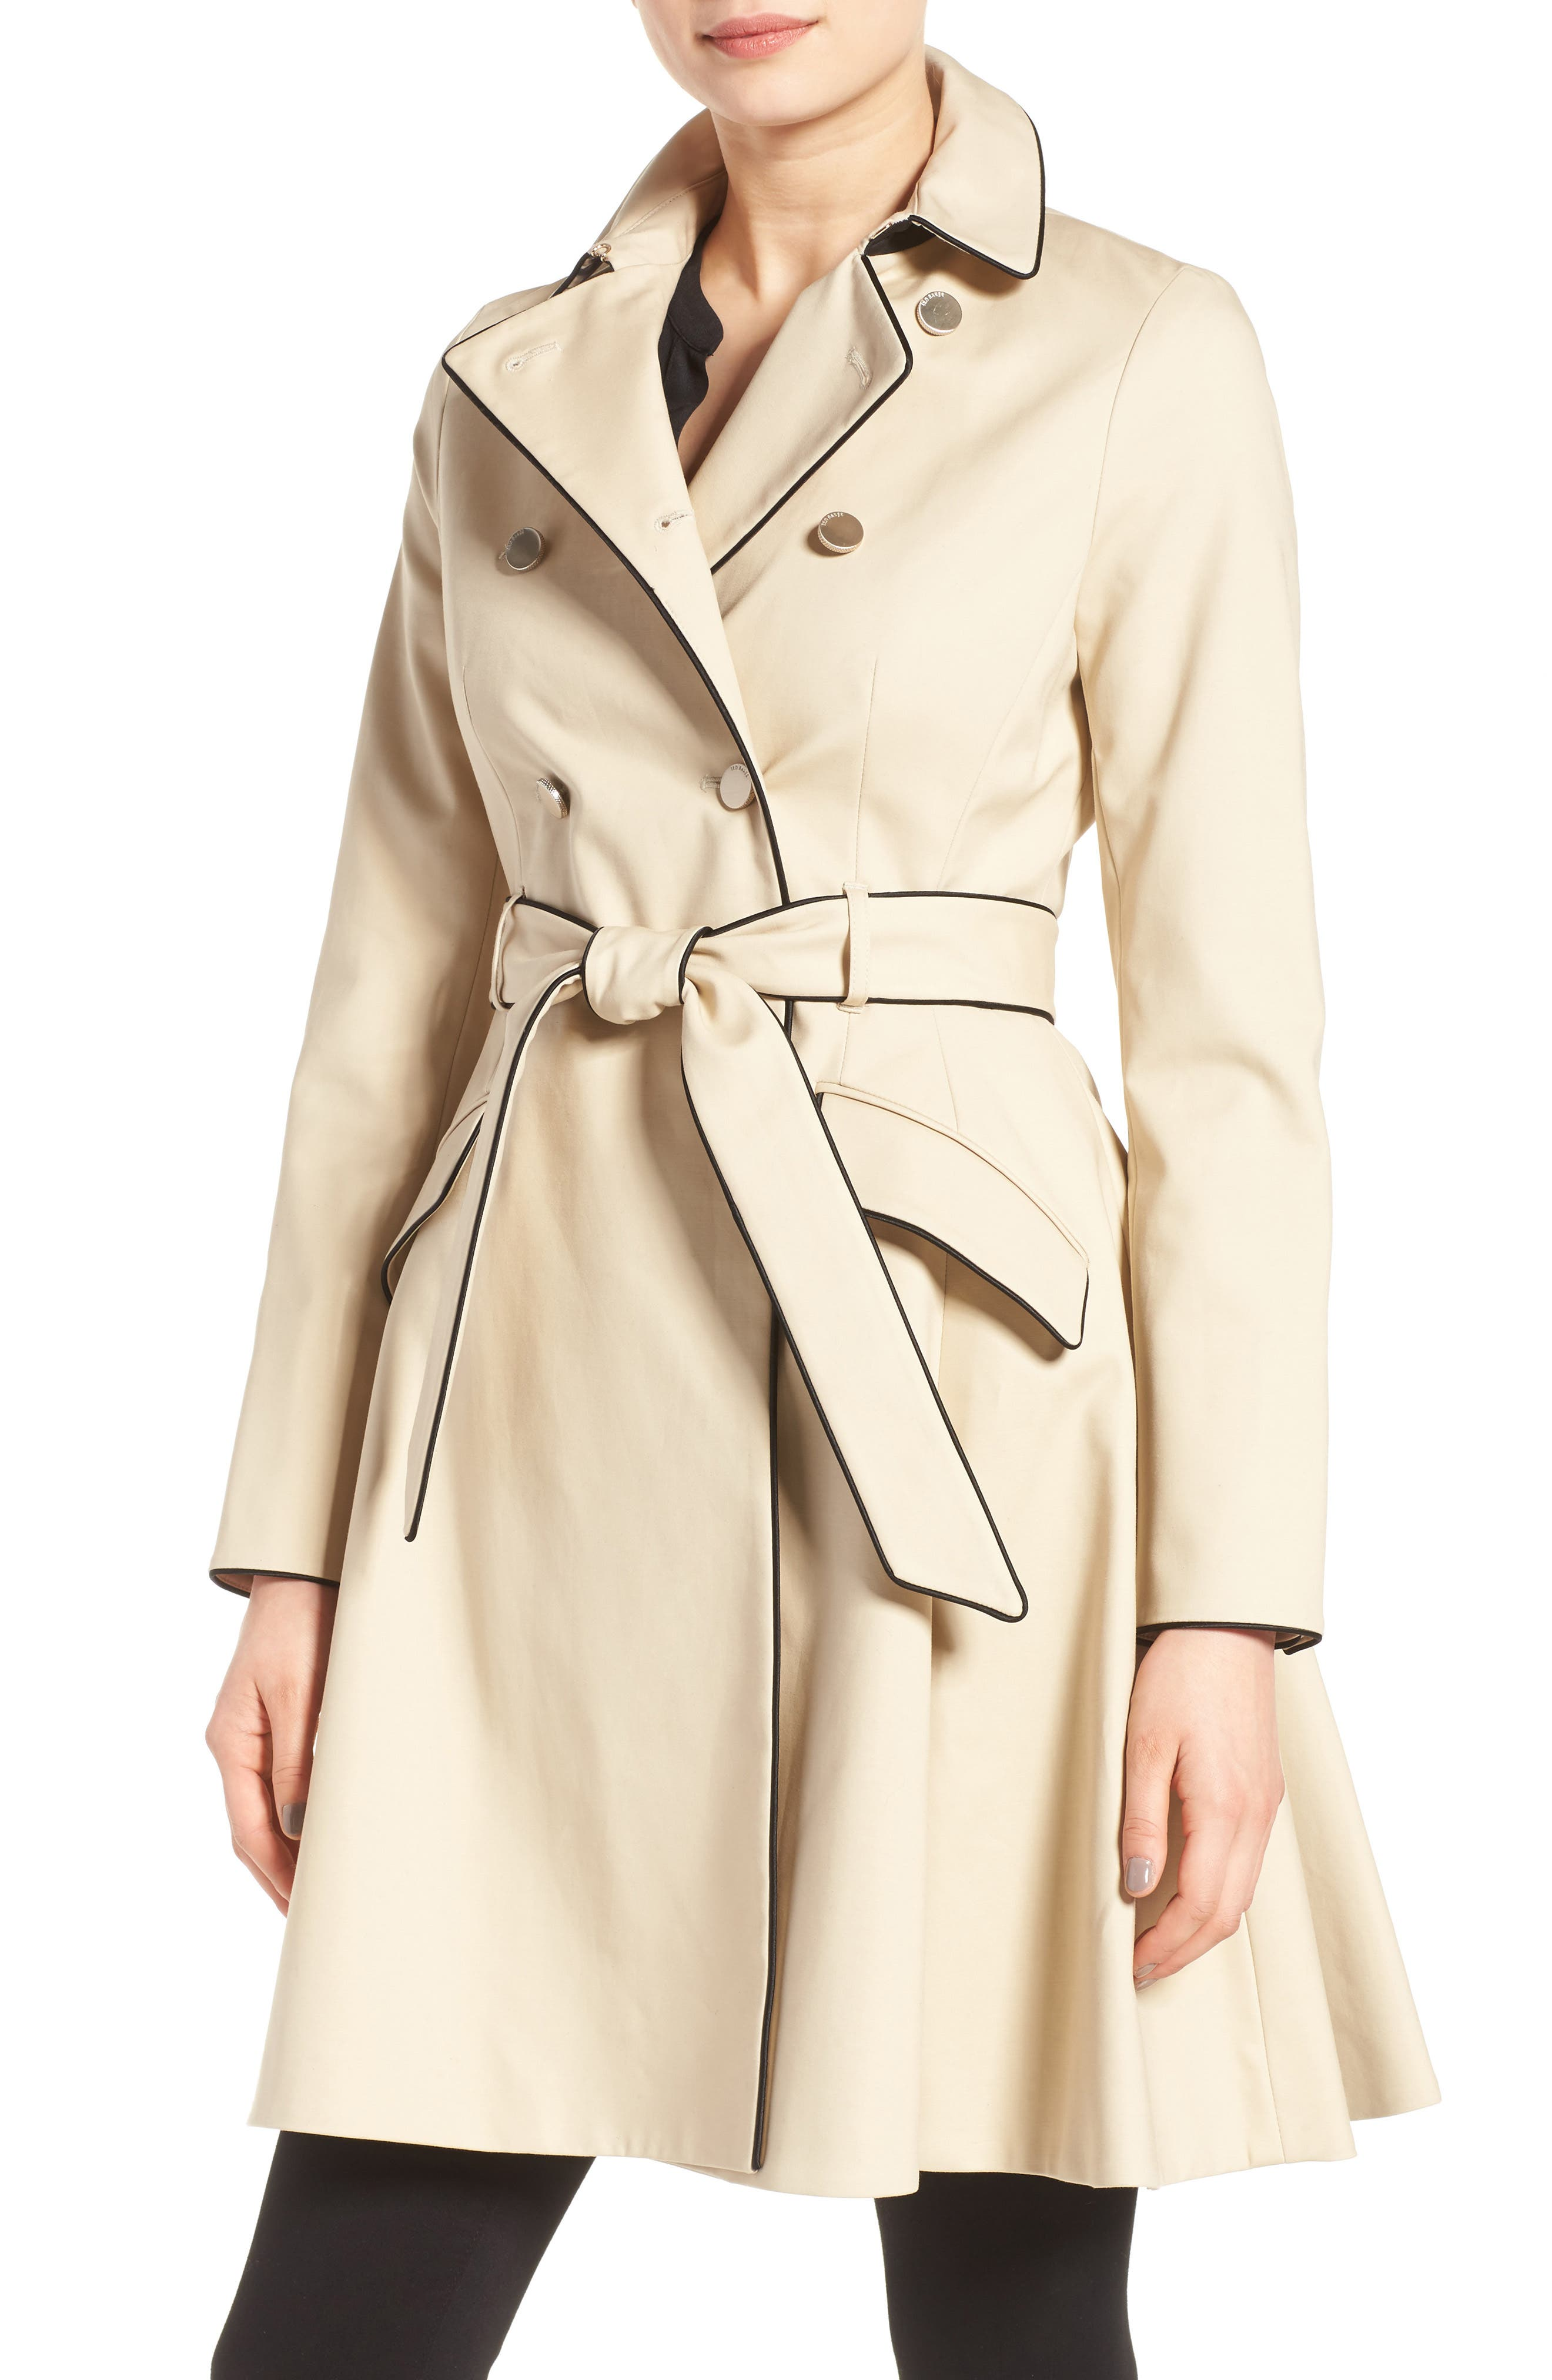 TED BAKER LONDON Piped Belted A-Line Macintosh Coat